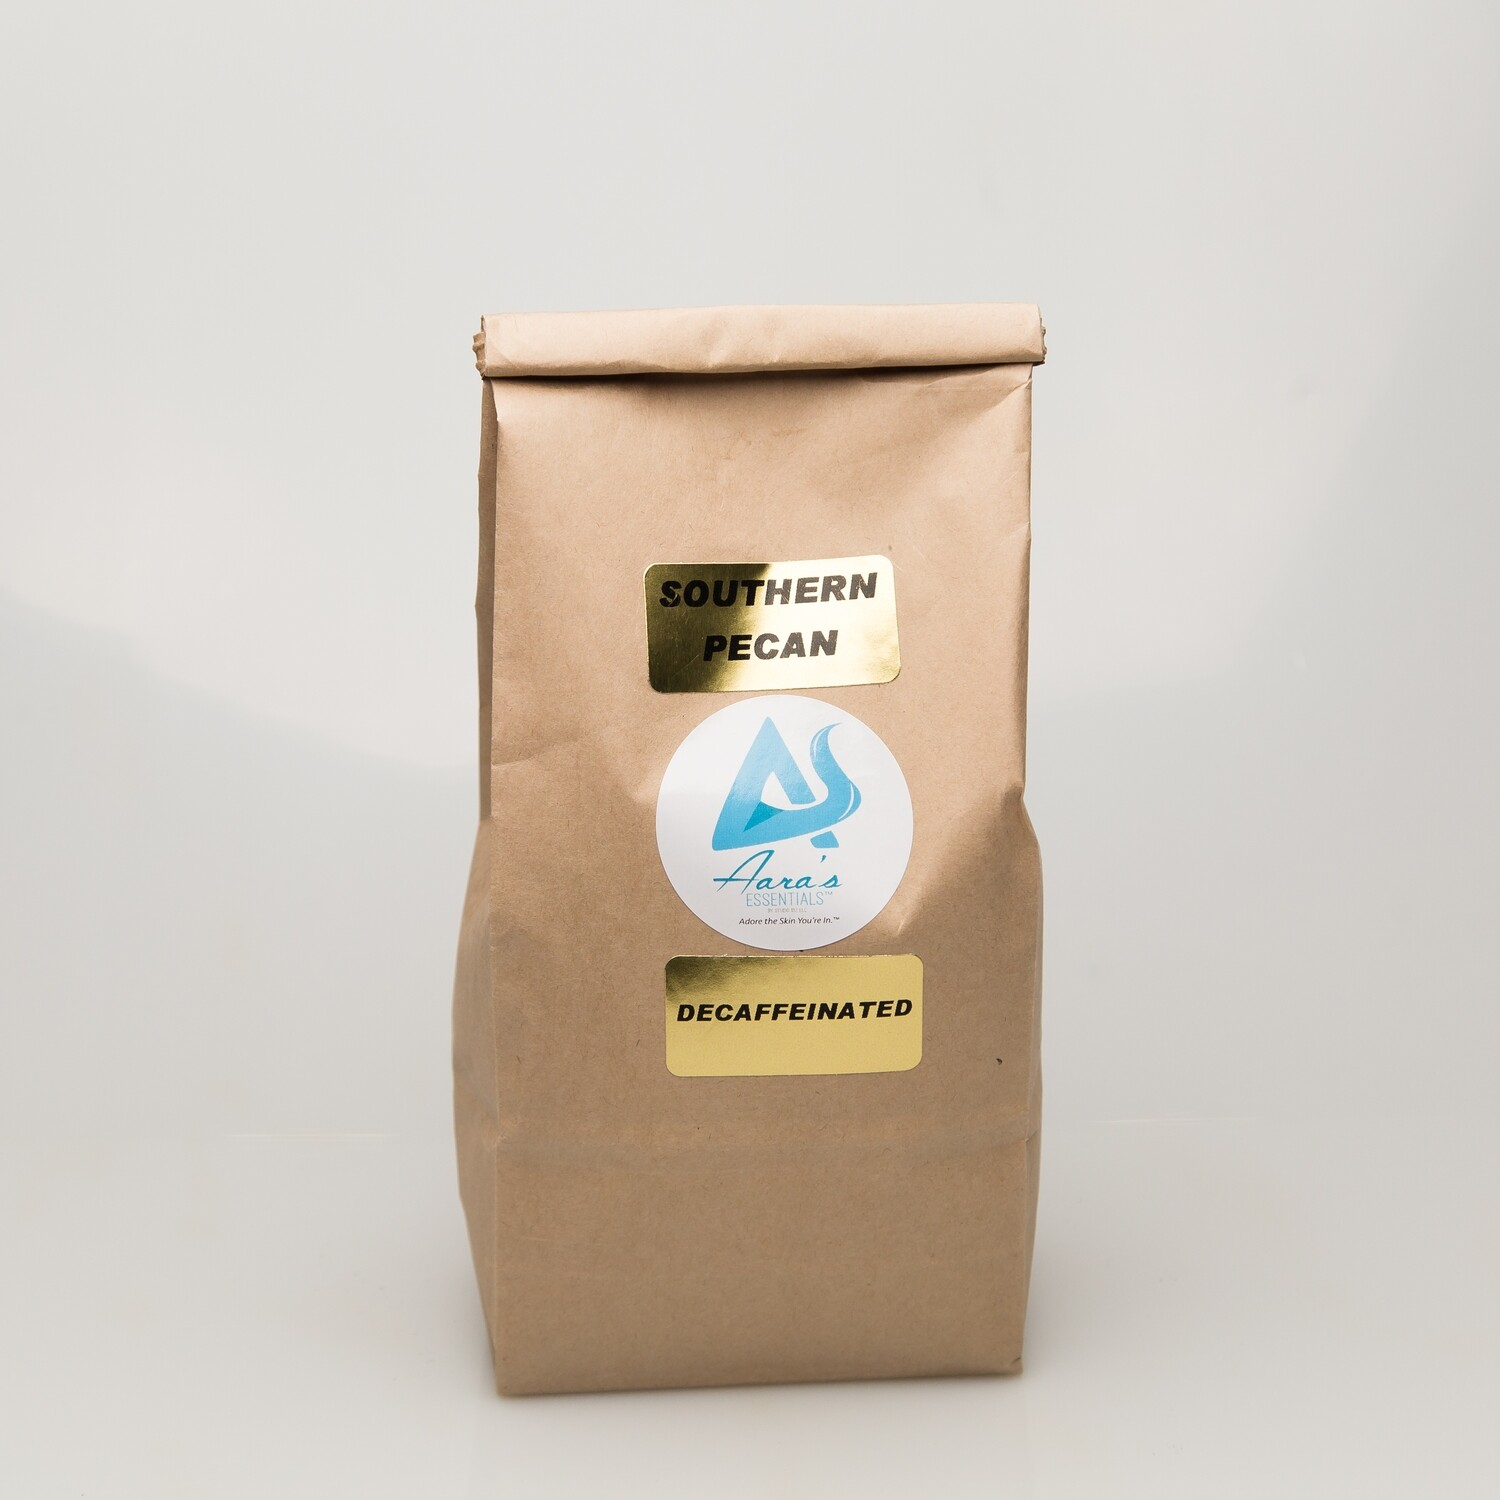 Southern Pecan Decaf Coffee